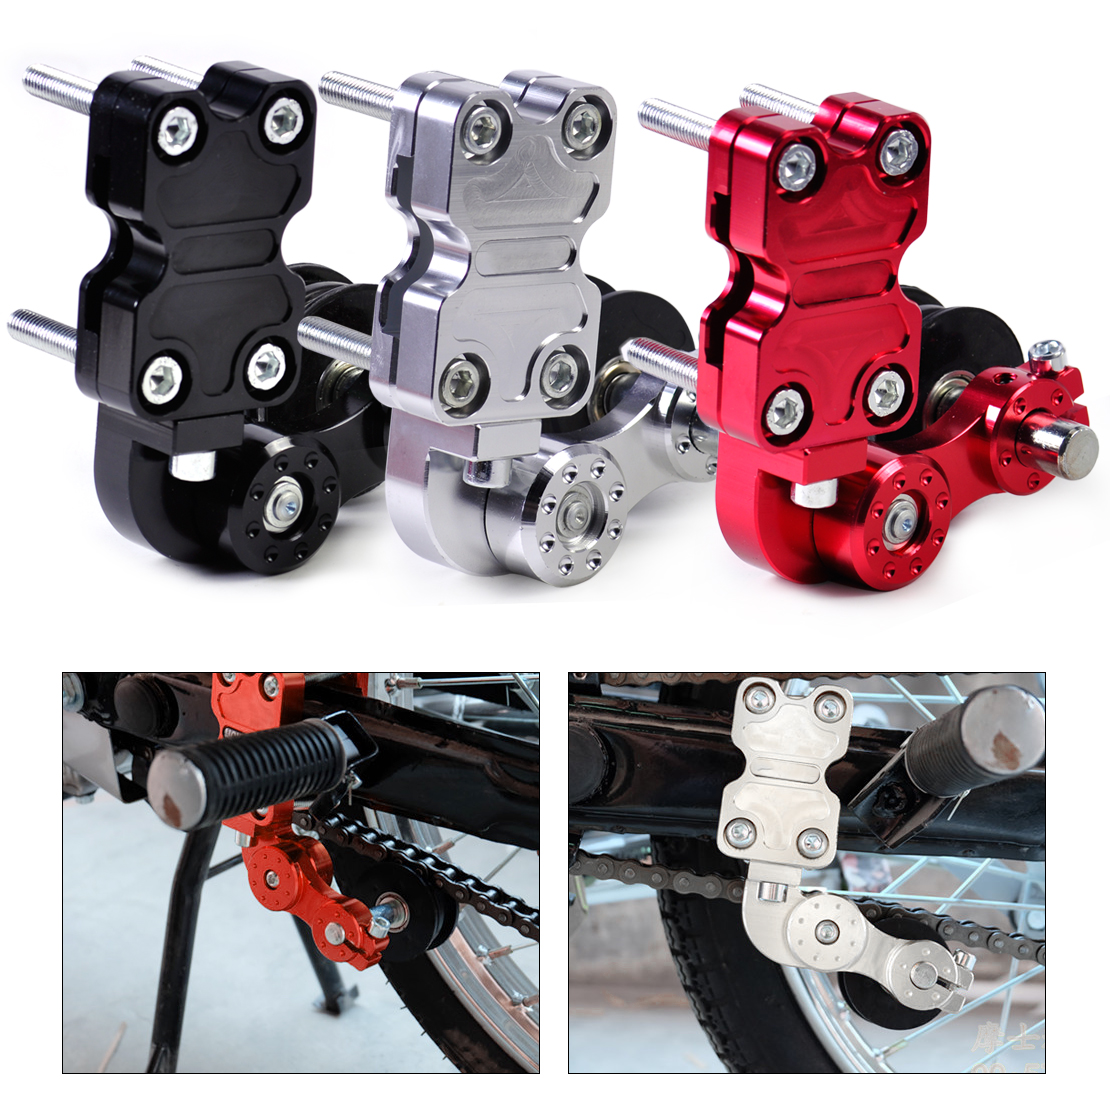 DWCX Universal Motorcycle Aluminum Chain Tensioner Bolt on Roller Adjustable for Motorcycle Dirt Street Bike Chopper Motocross universal motorcycle chain tensioner bolt on roller chopper atv dirt street bike for suzuki rg 125 vespa 150 vba t4 180ss all ye